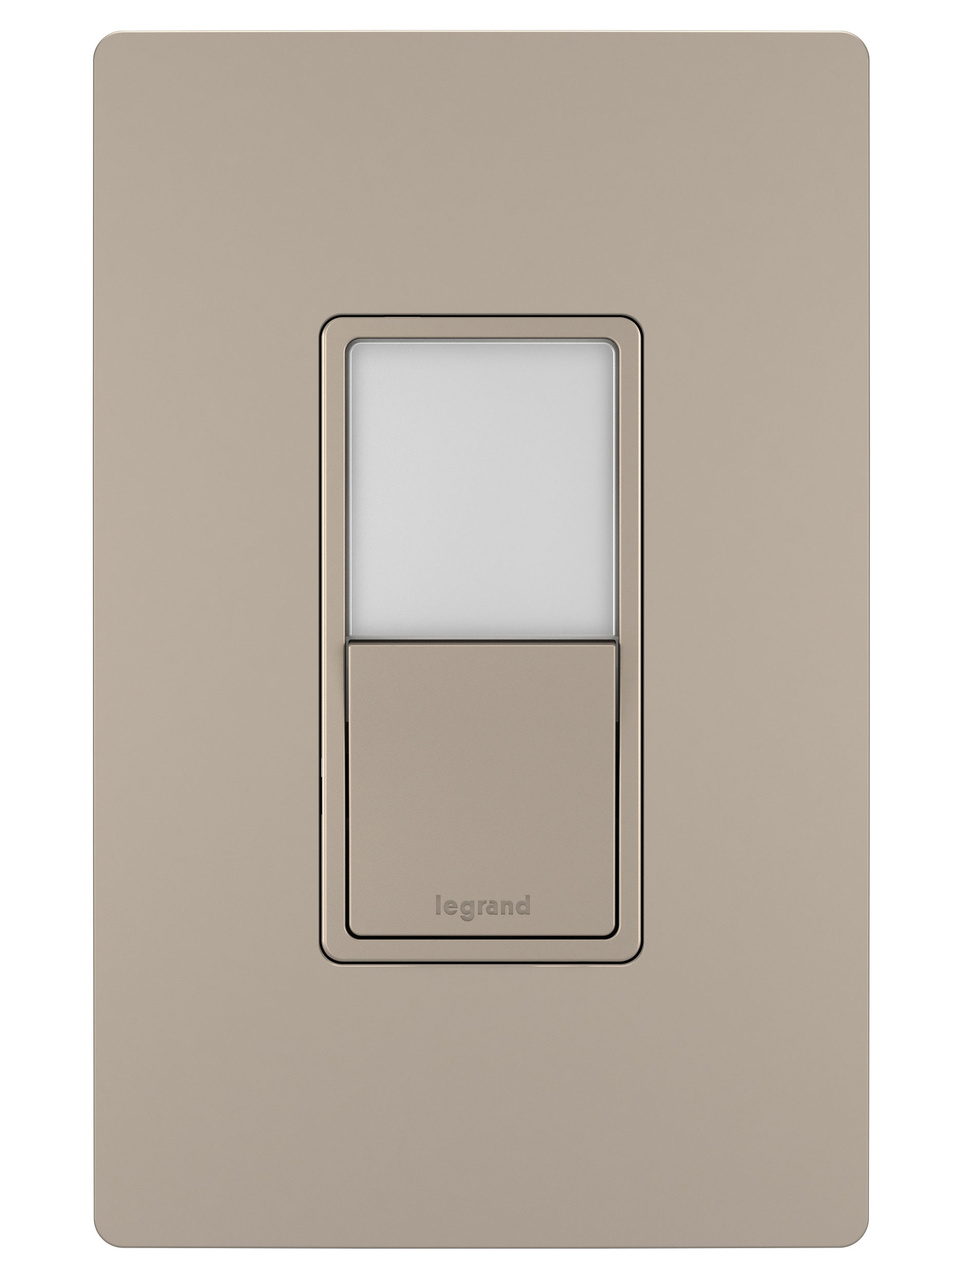 Night Light with Single-Pole, 3-Way Switch, Nickel